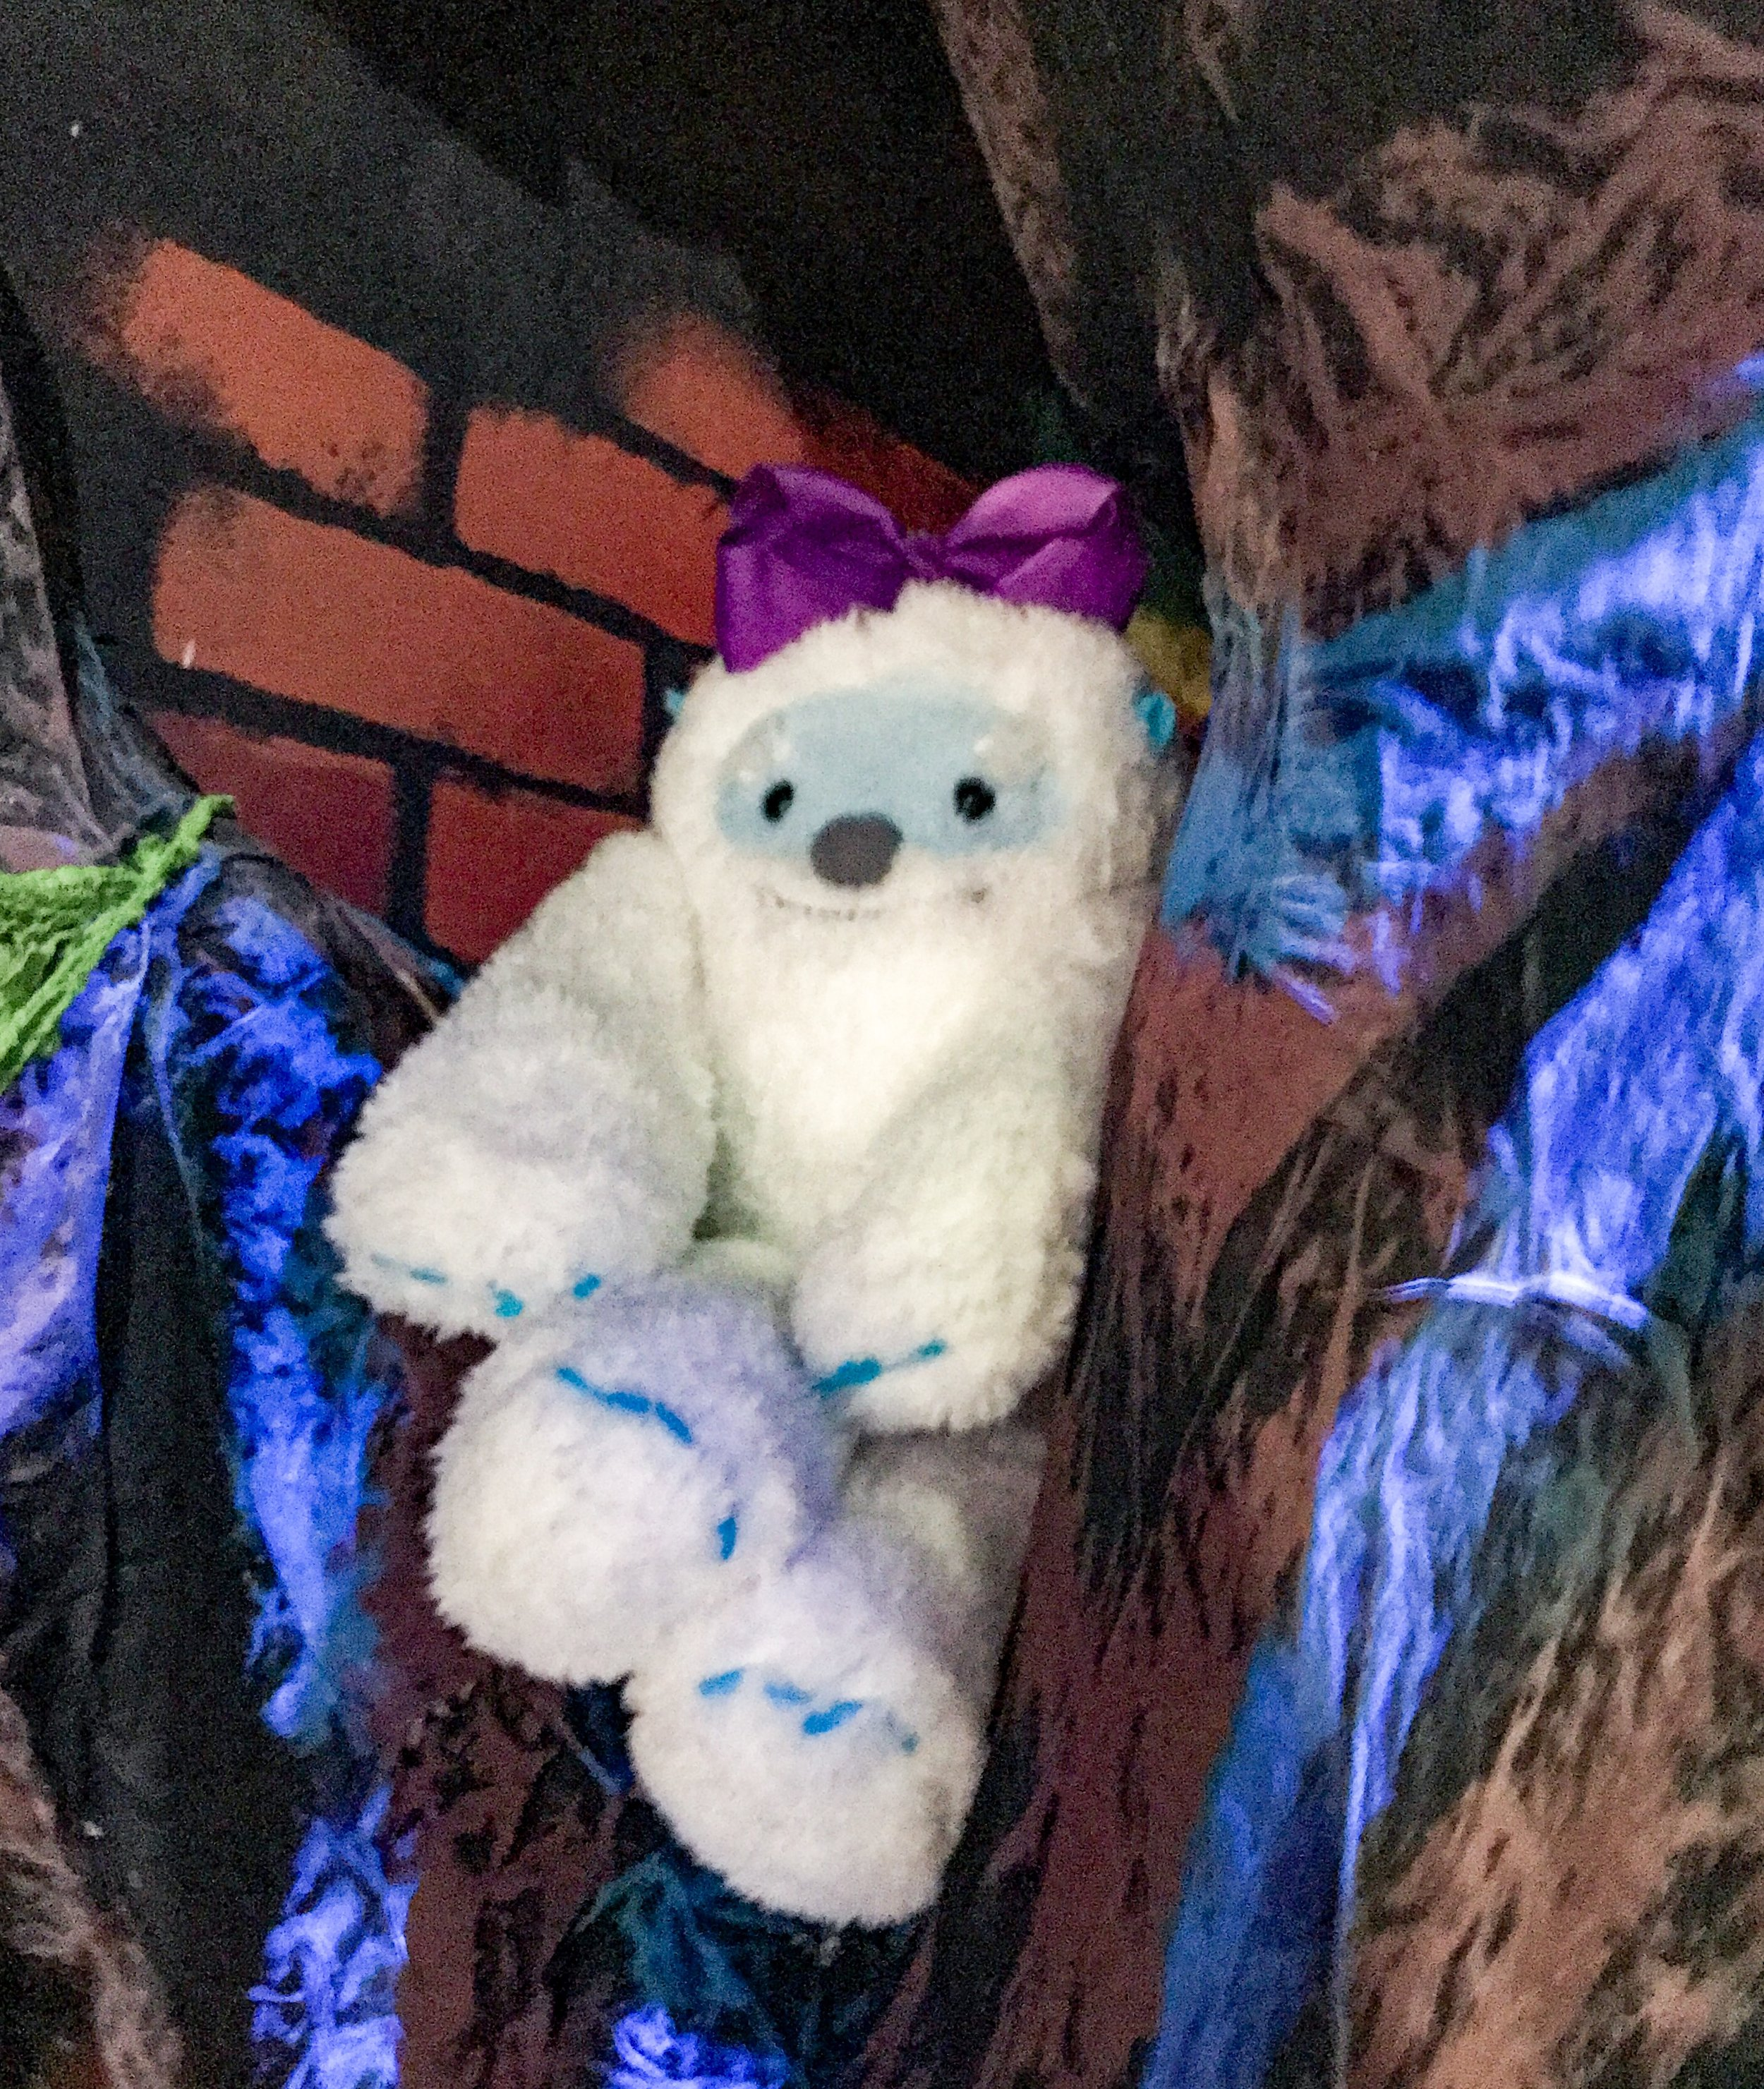 Gertie the Yeti at The Children's Museum of Indianapolis. Gertie is in every room of Grim-nasium.